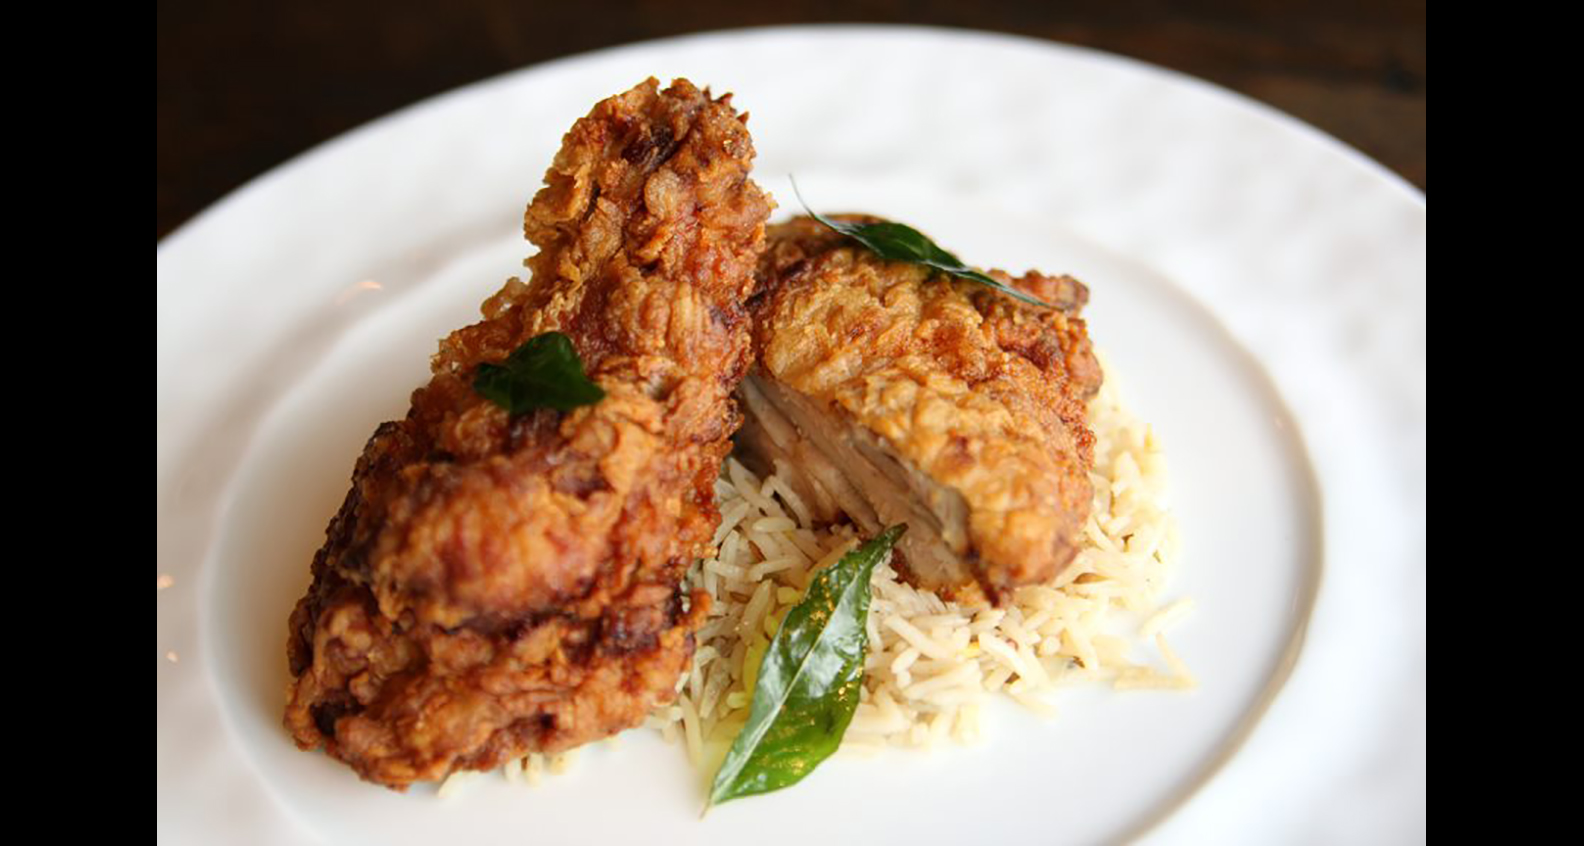 Kerala-style Fried Chicken